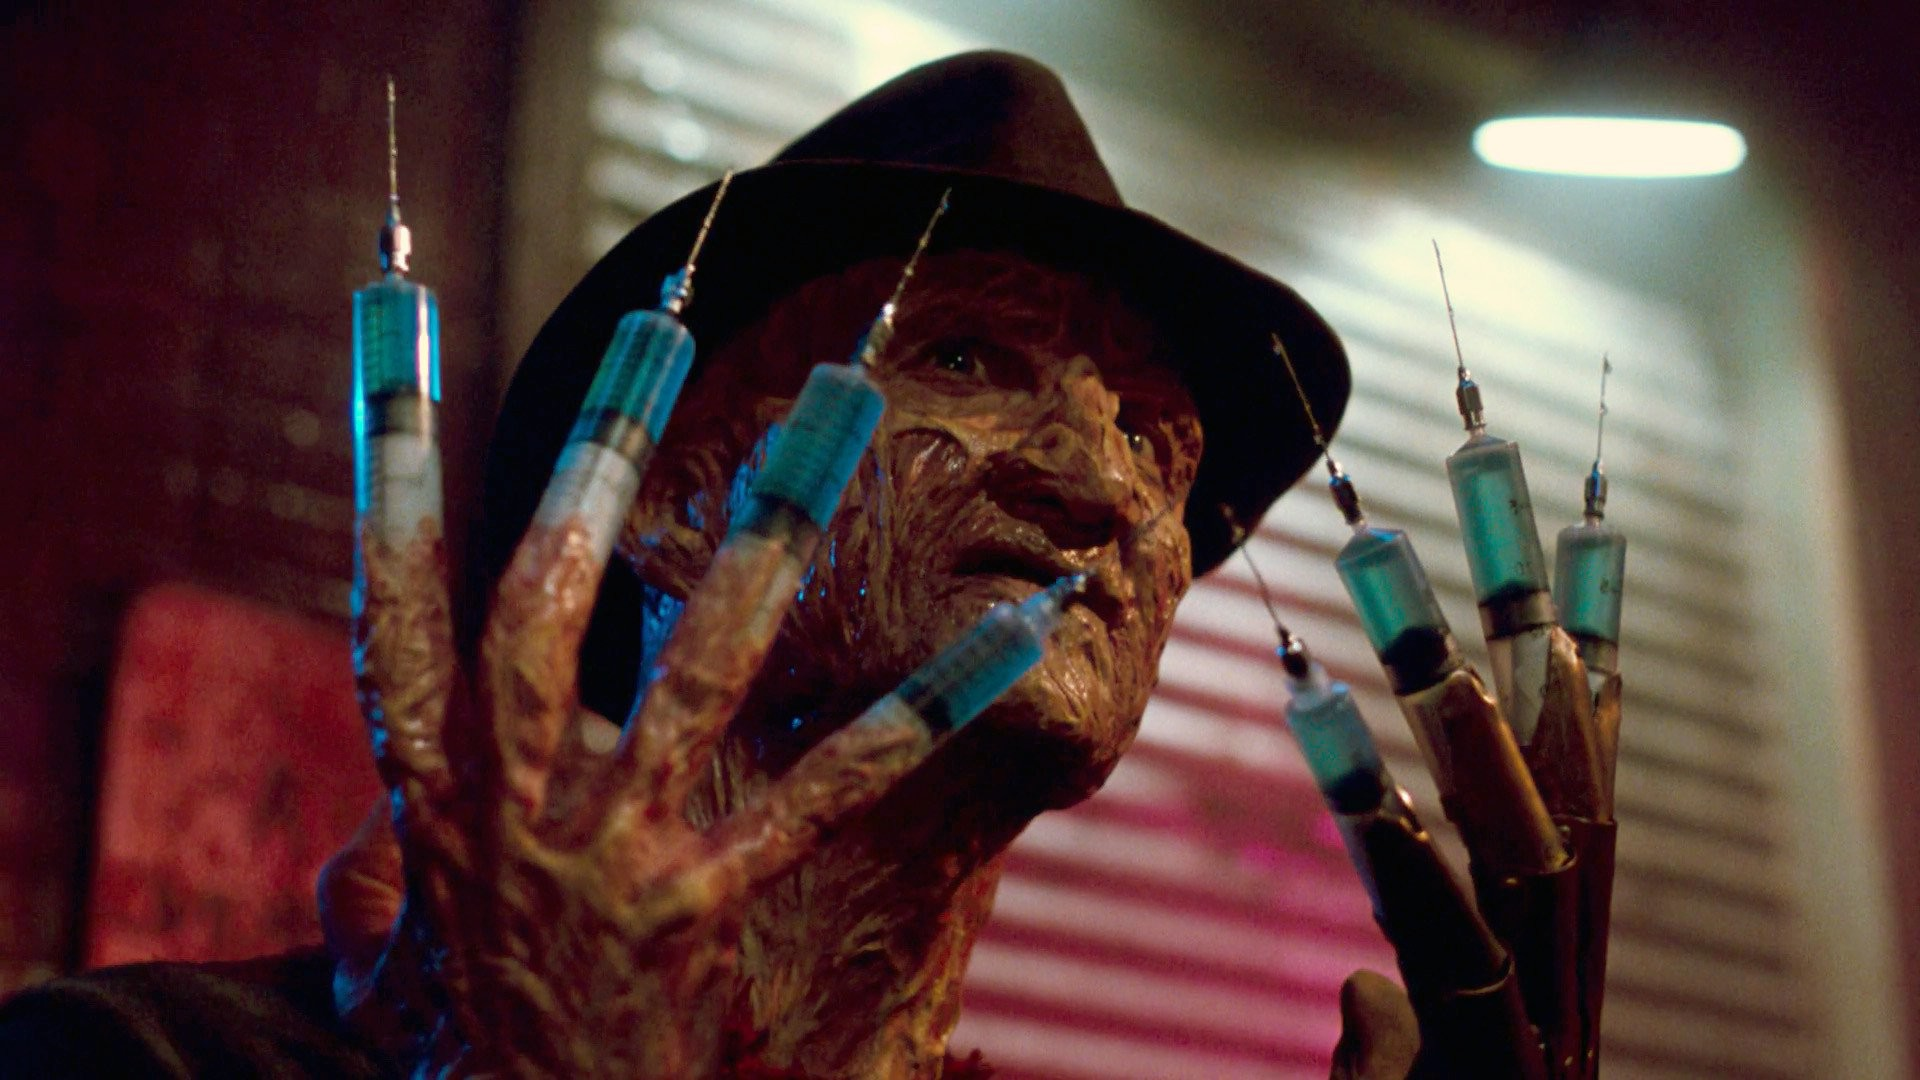 Robert Englund Reveals His Idea for a 'Nightmare on Elm Street' Sequel    IndieWire